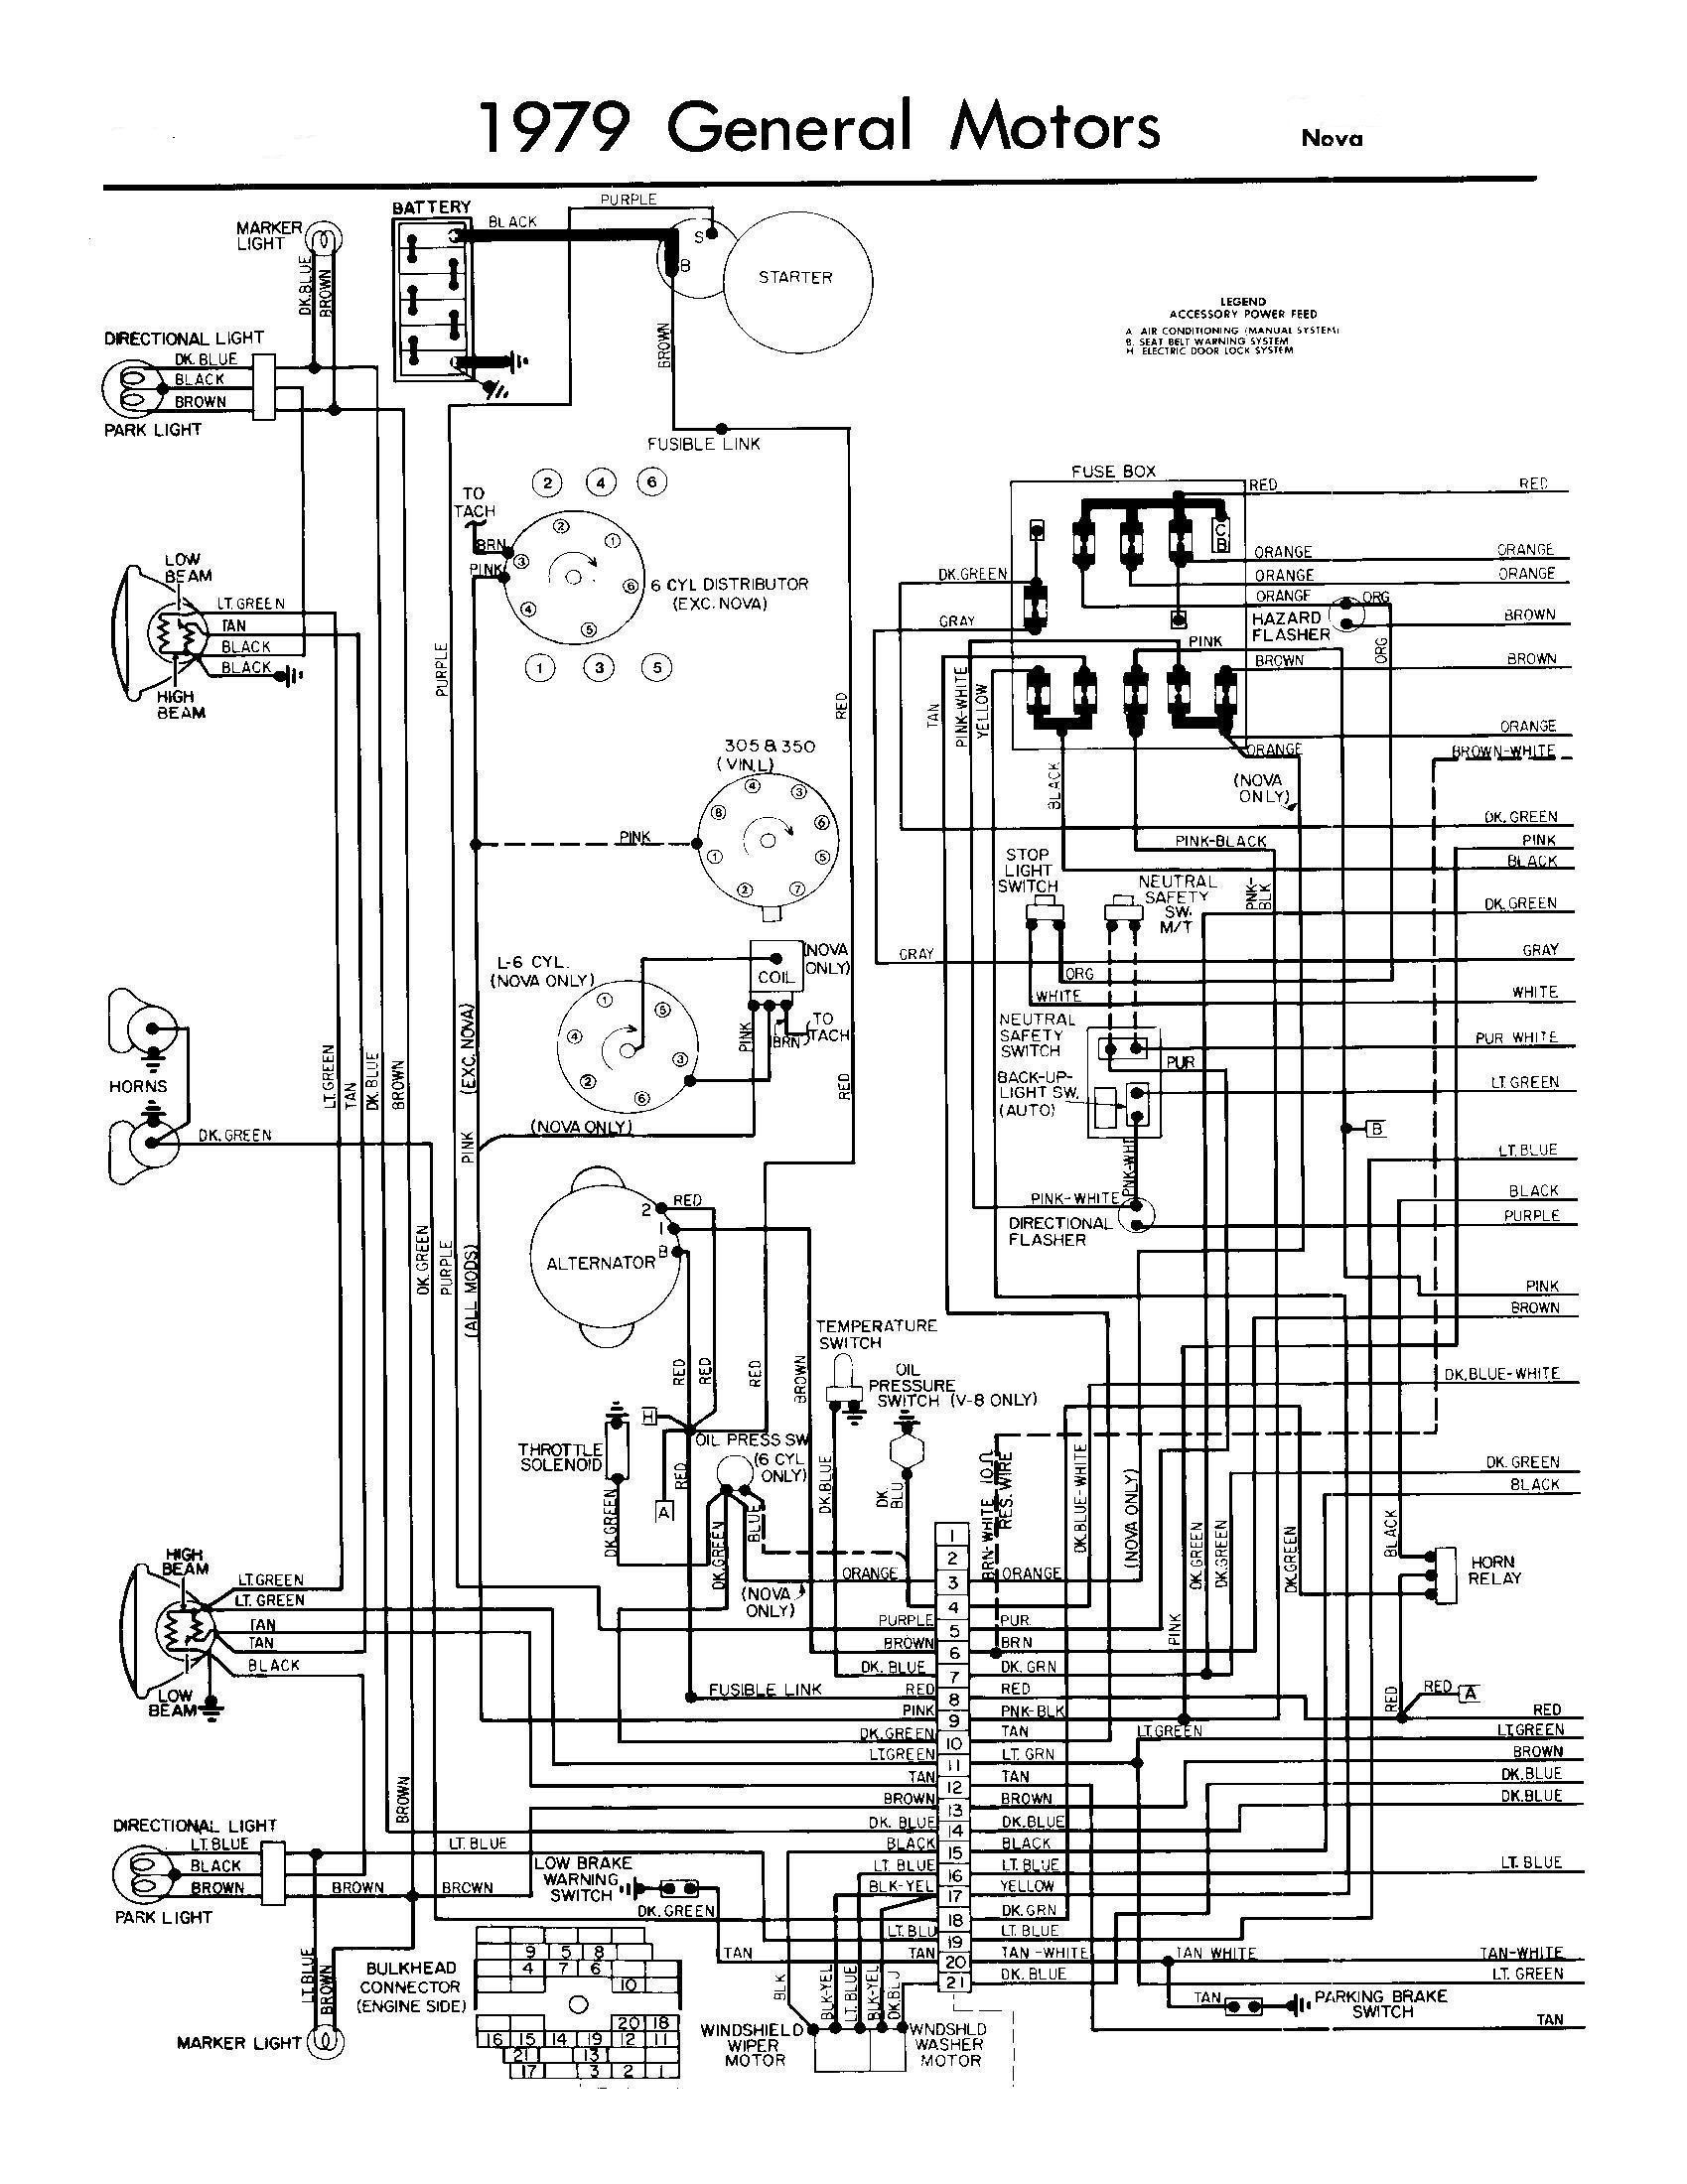 2013 Mack Truck Wiring Digram Great Installation Of Diagram Harness 1977 Simple Rh 44 Berlinsky Airline De Trucks Electrical School Bus Diagrams